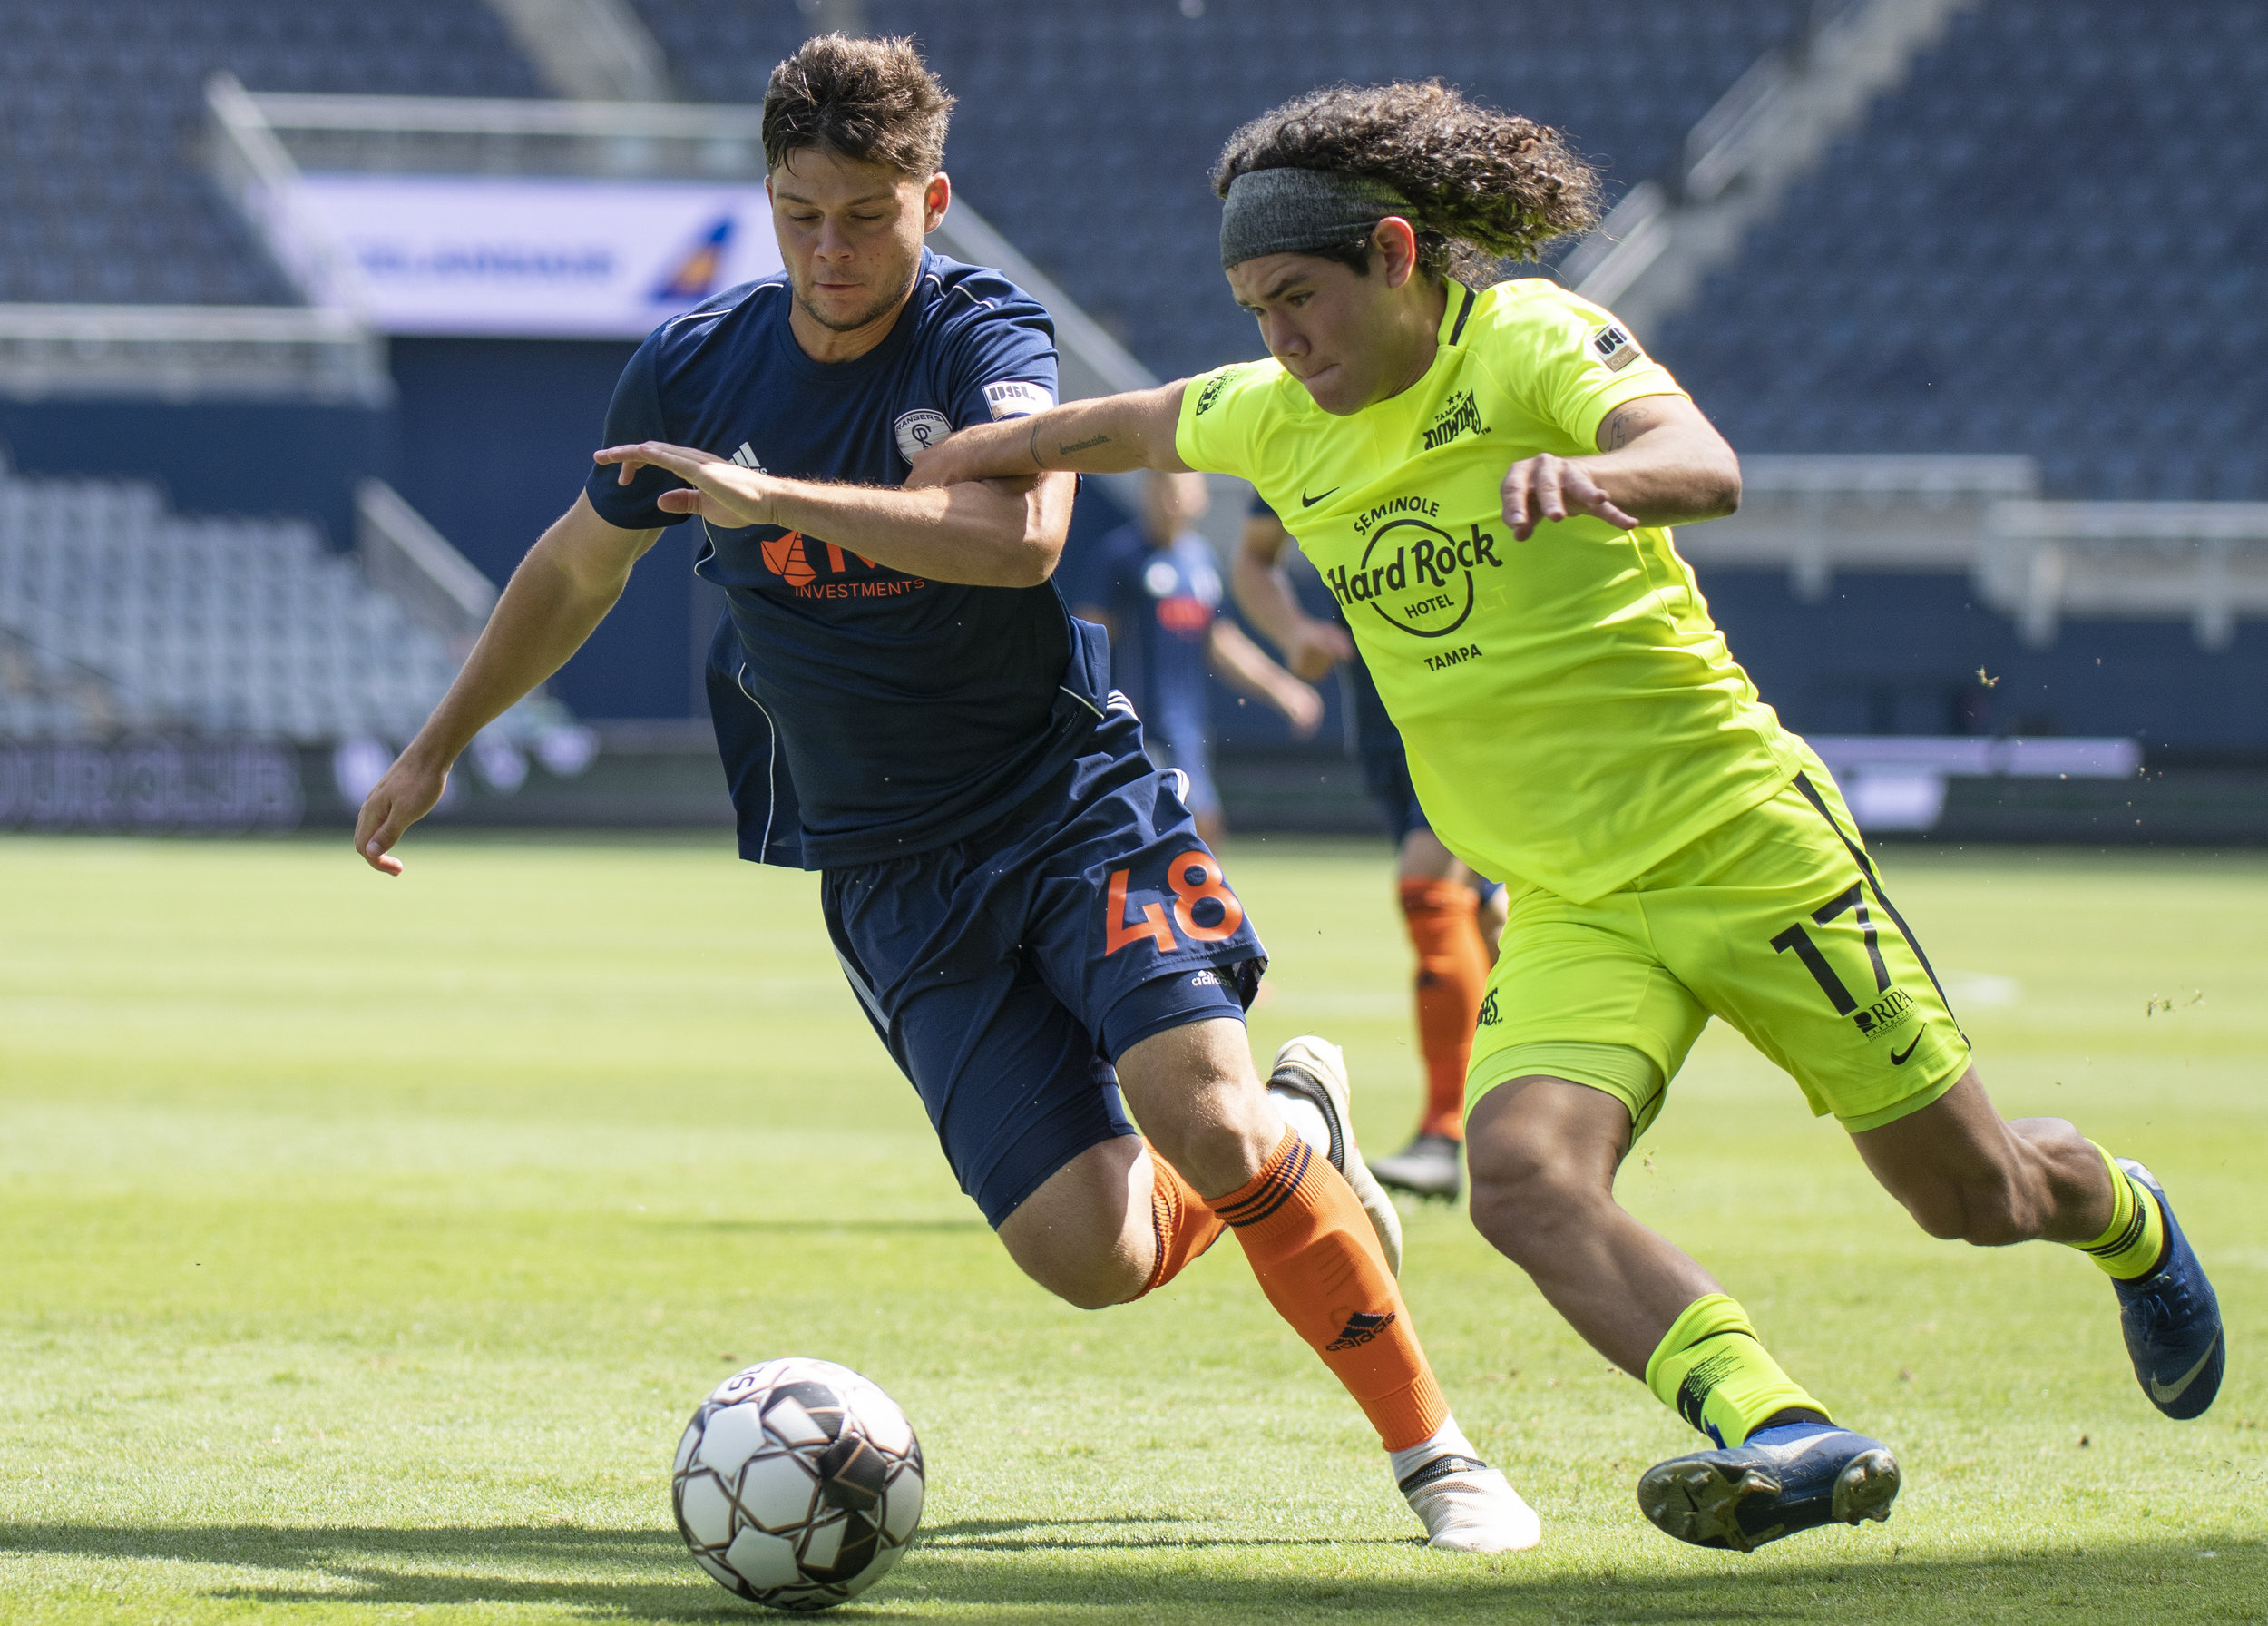 Juan Tejada (17) fights for the ball during the Swope Park Rangers vs. Tampa Bay Rowdies match on Sunday, July 7, 2019 at Children's Mercy Park in Kansas City, Kansas. The Rangers fell to the Rowdies 3-1 .